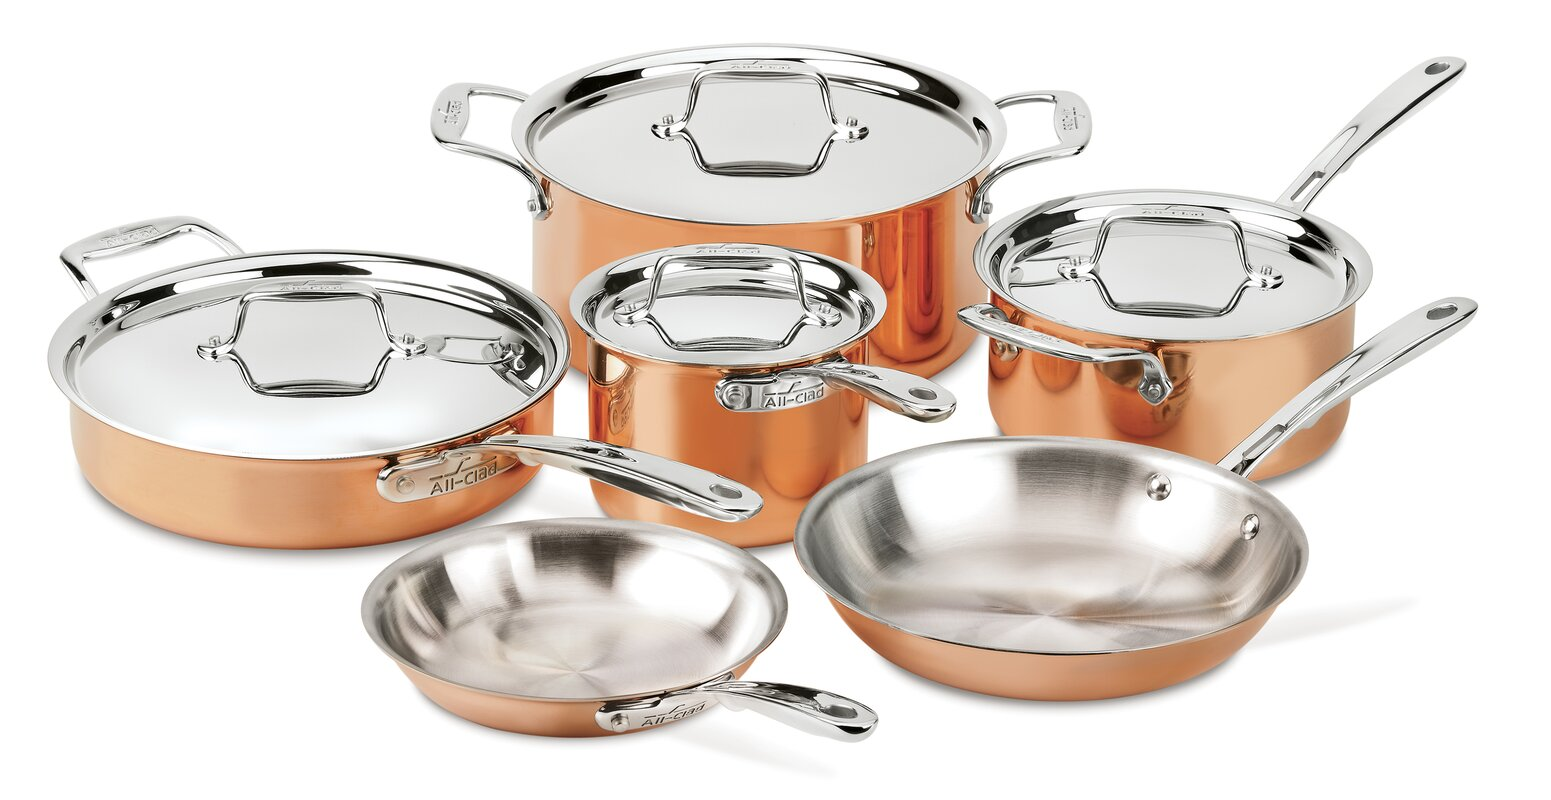 All-Clad 10 Piece Copper Cookware Set